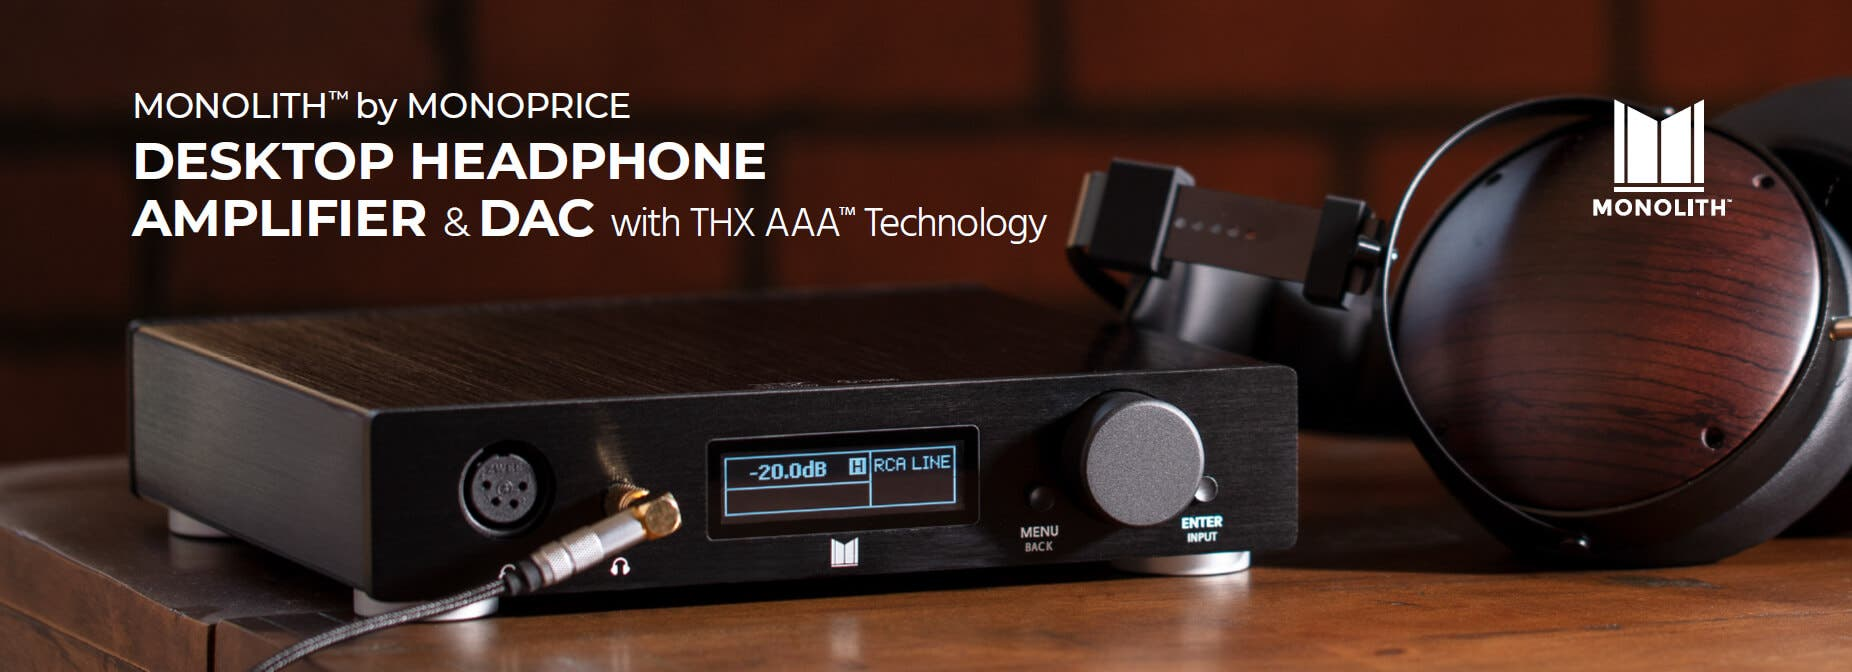 2020 Best THX AAA Desktop DAC & Headphone Amplifier in Malaysia.jpg